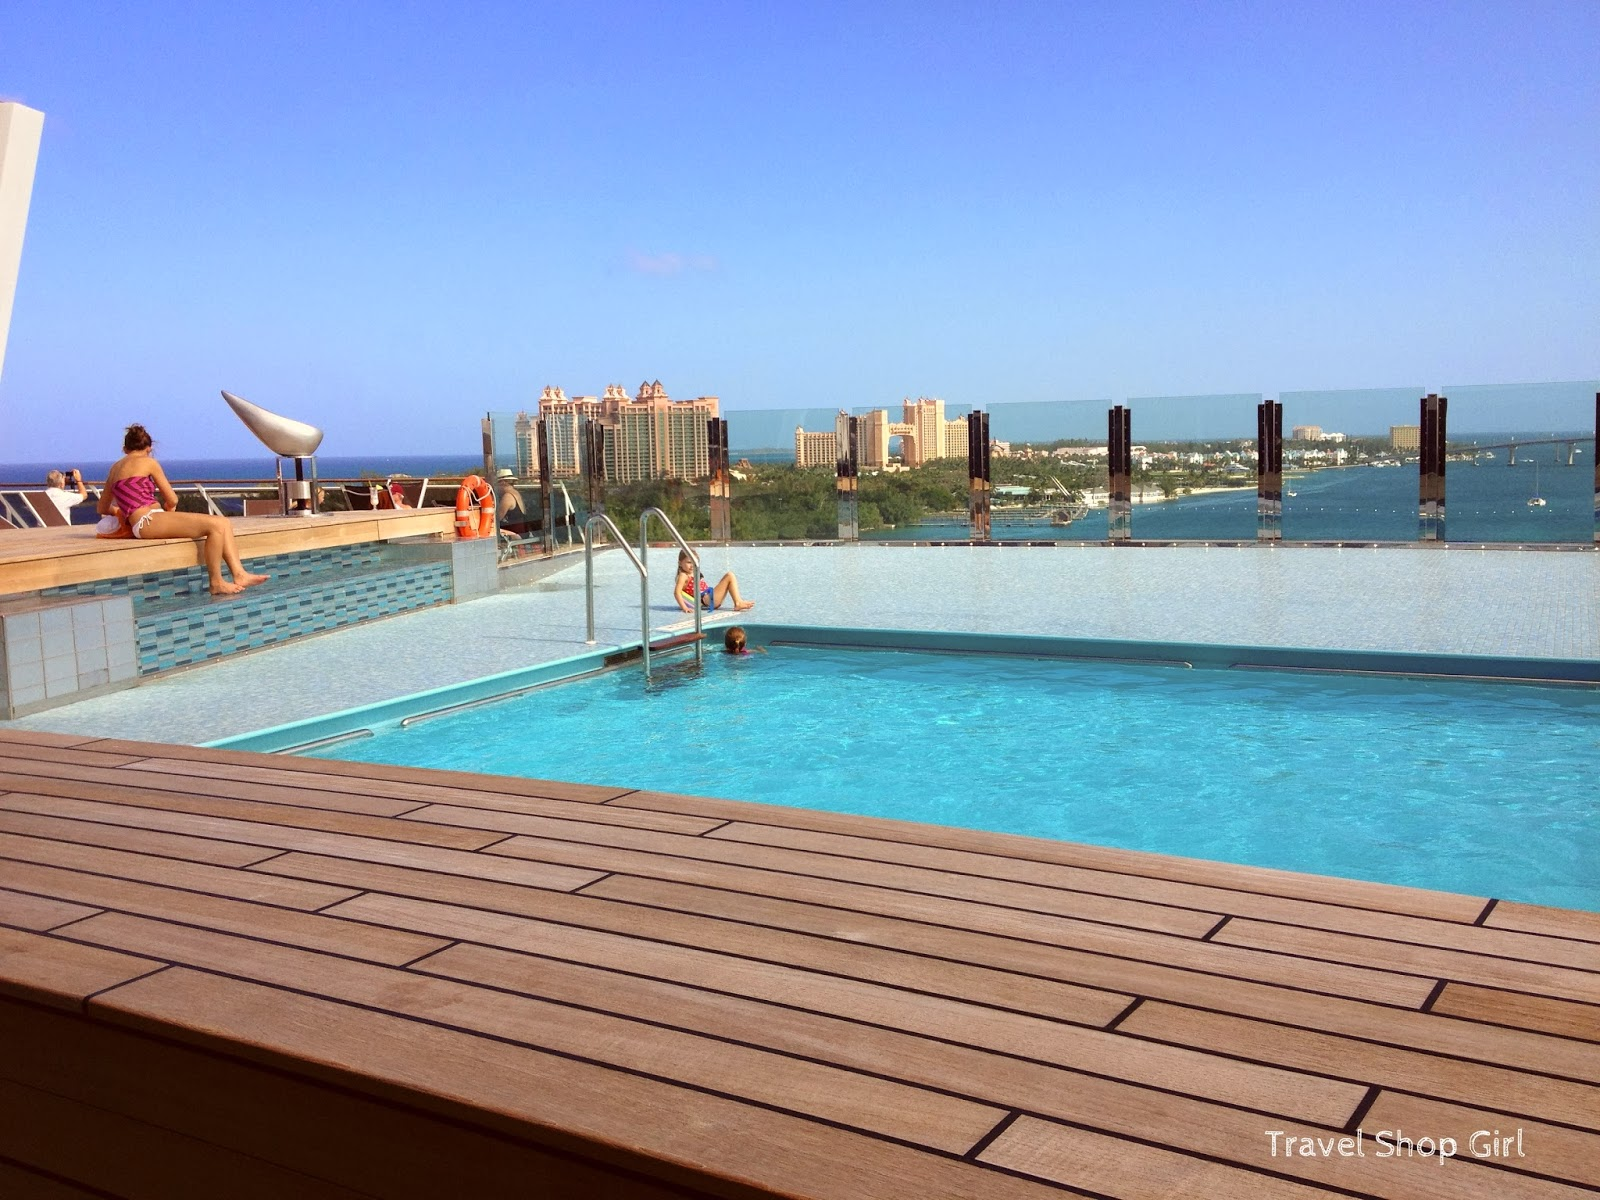 Msc divina pools sun fun msc cruises review travel for Pool in the garden